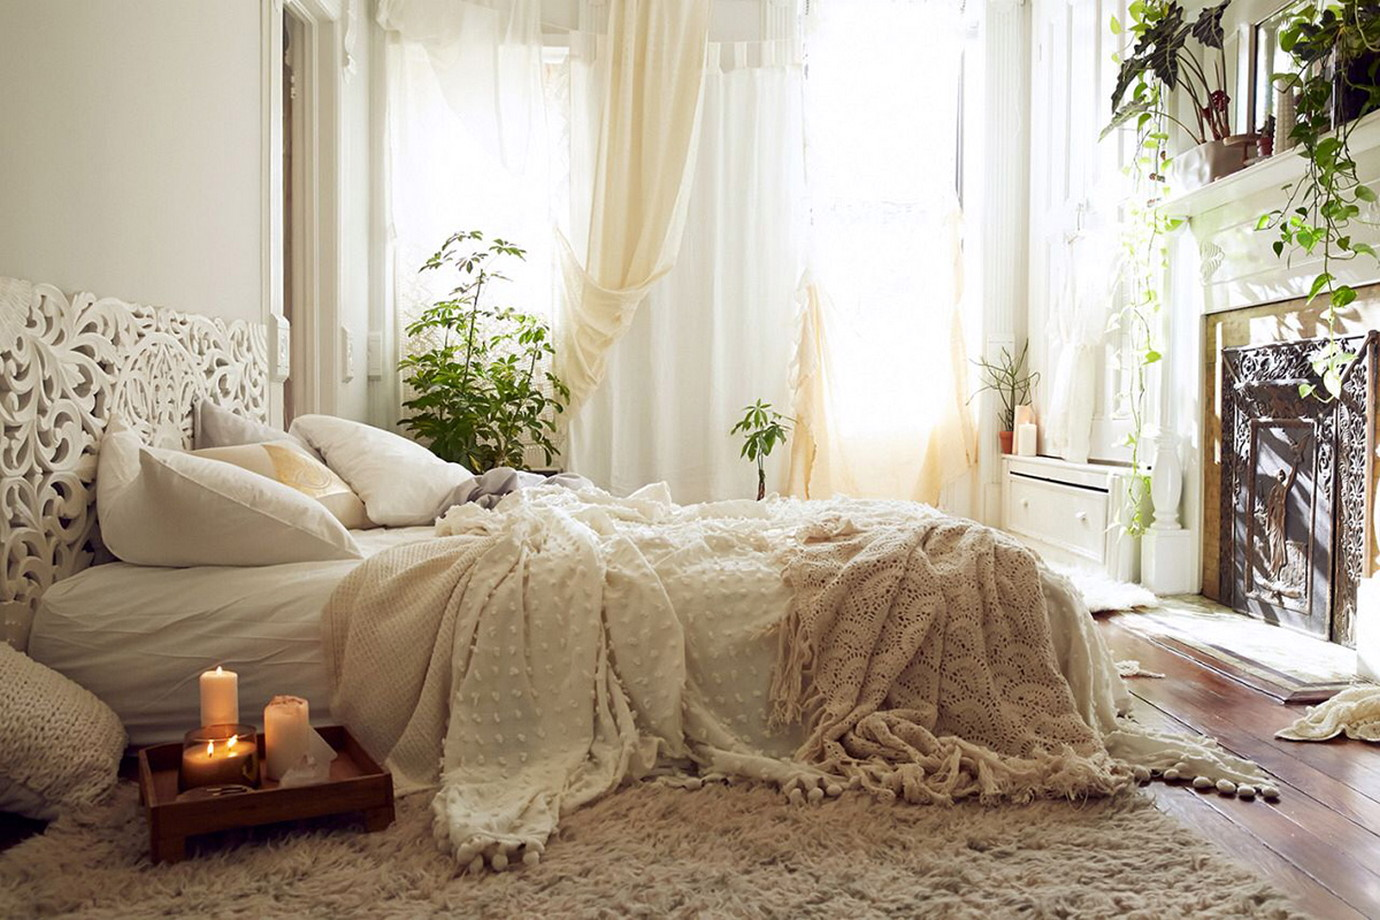 Romantic Bedroom Decorating Ideas With Candle Light Architecturein